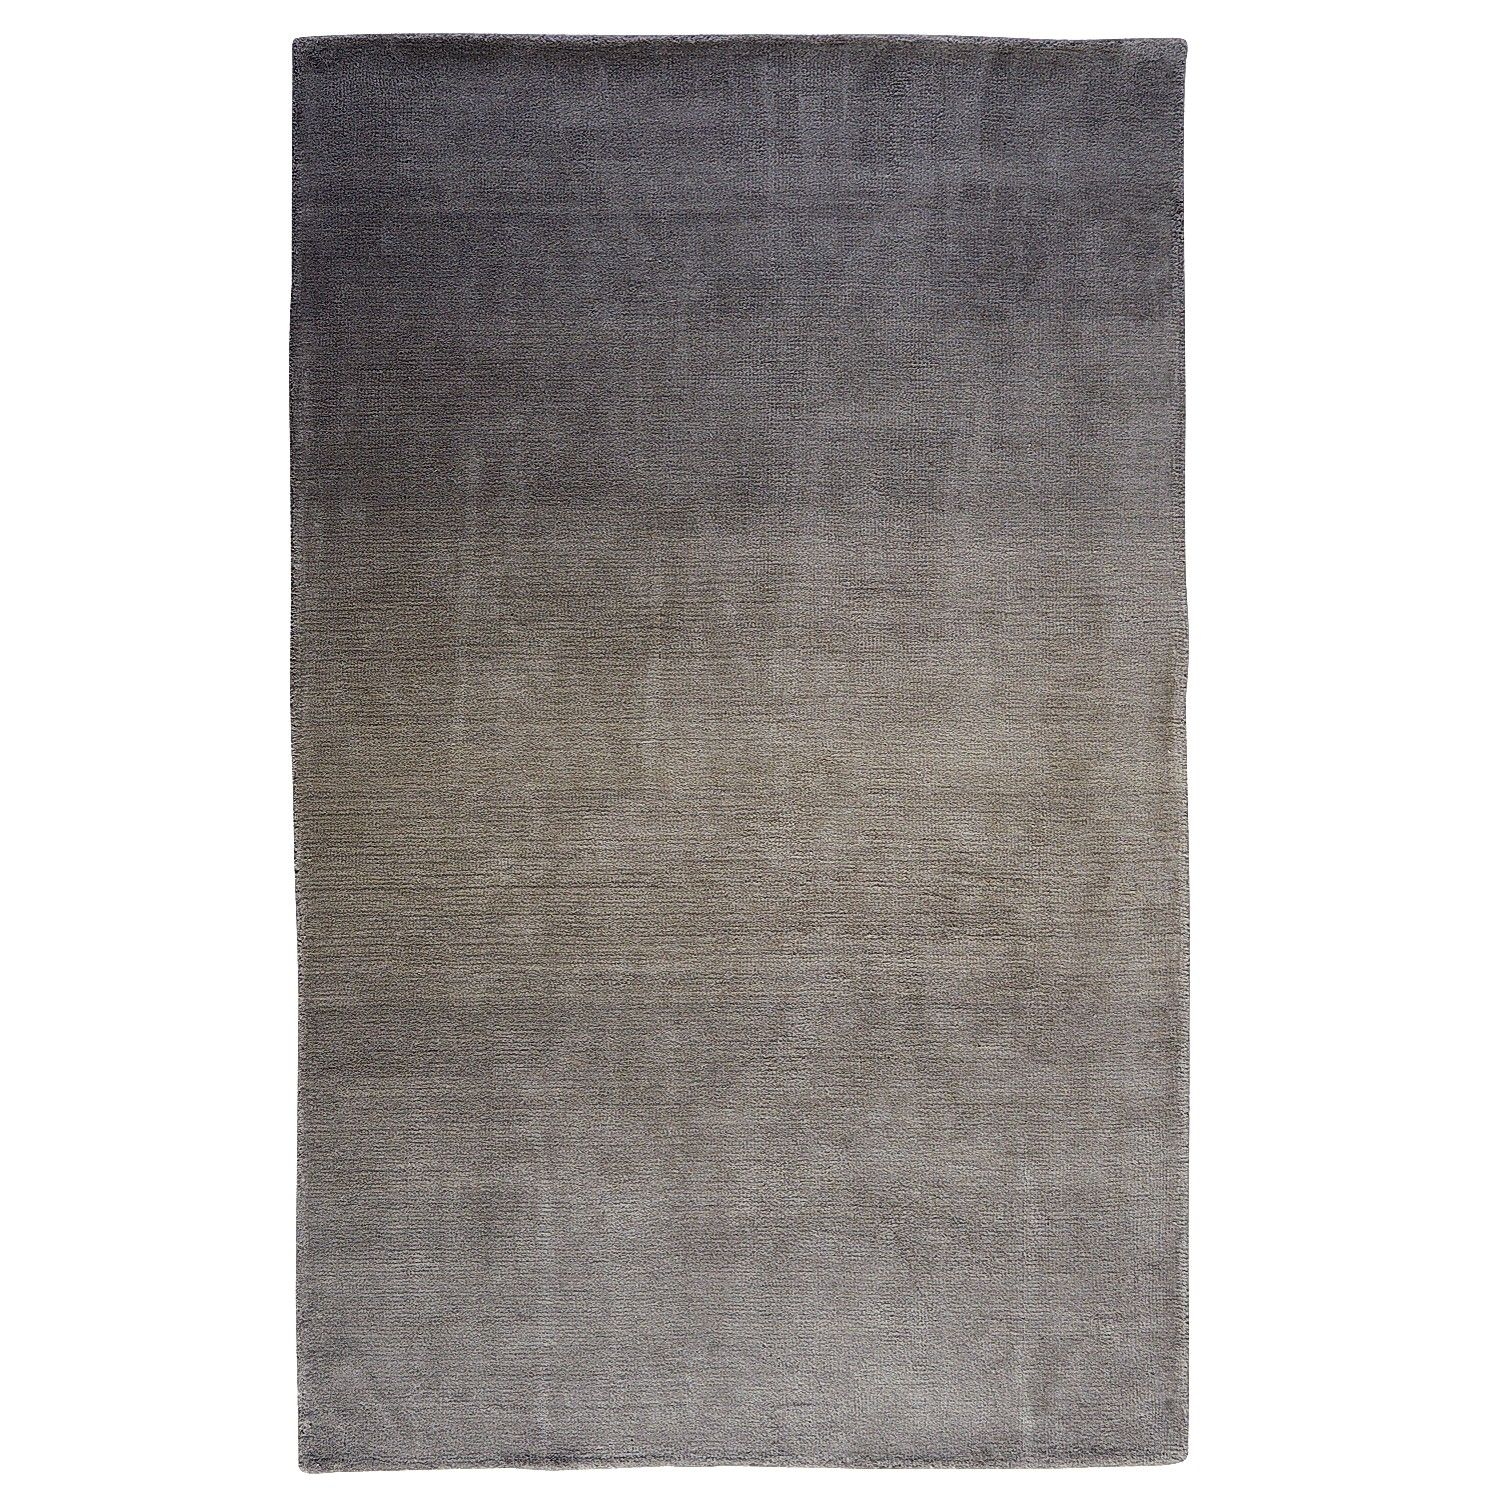 Gray Ombre Rug - Charcoal 8x10